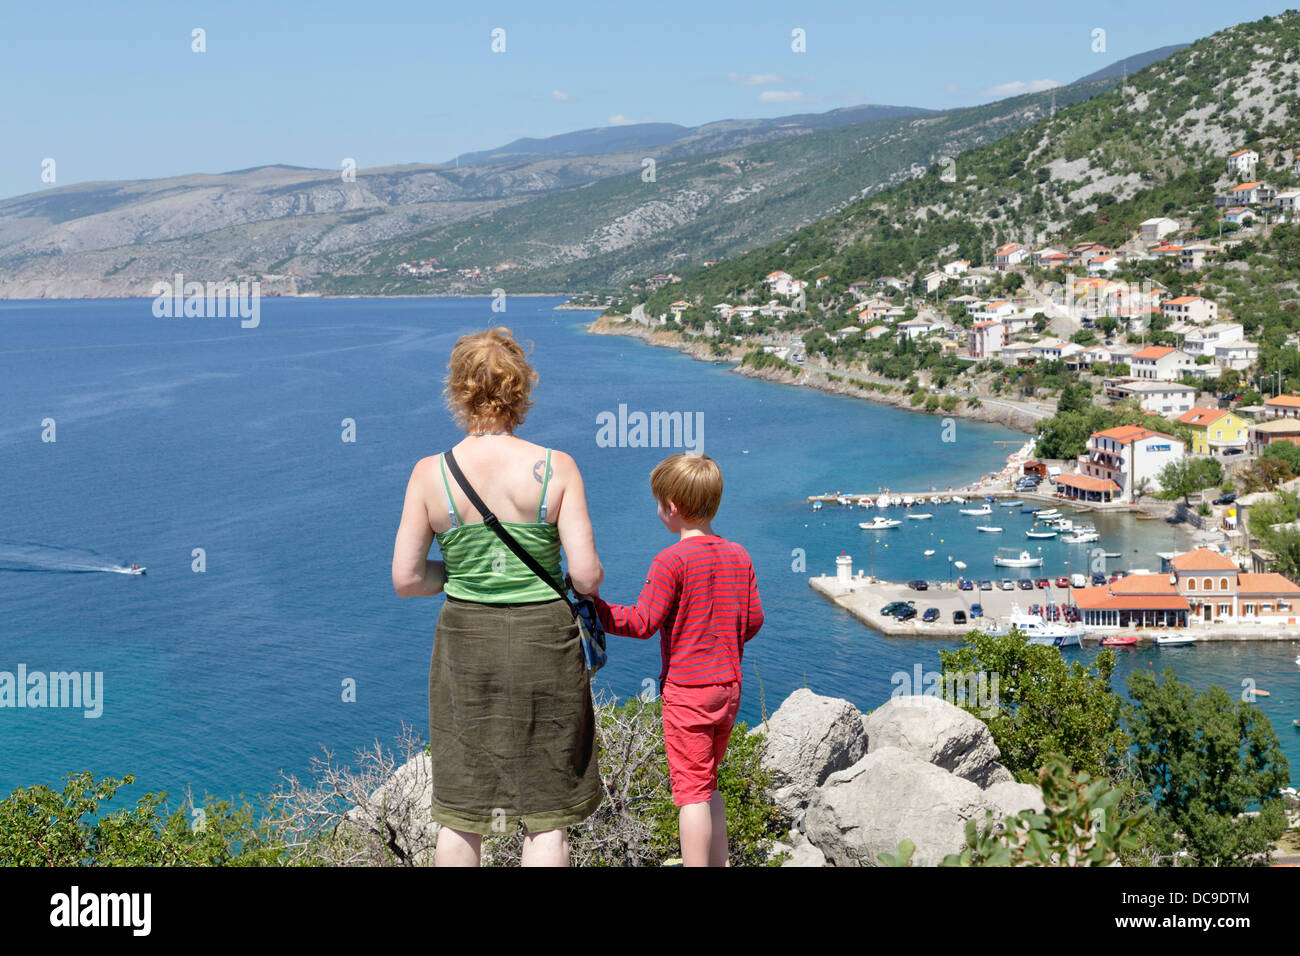 Permalink to Travel in Kvarner Gulf, Croatia